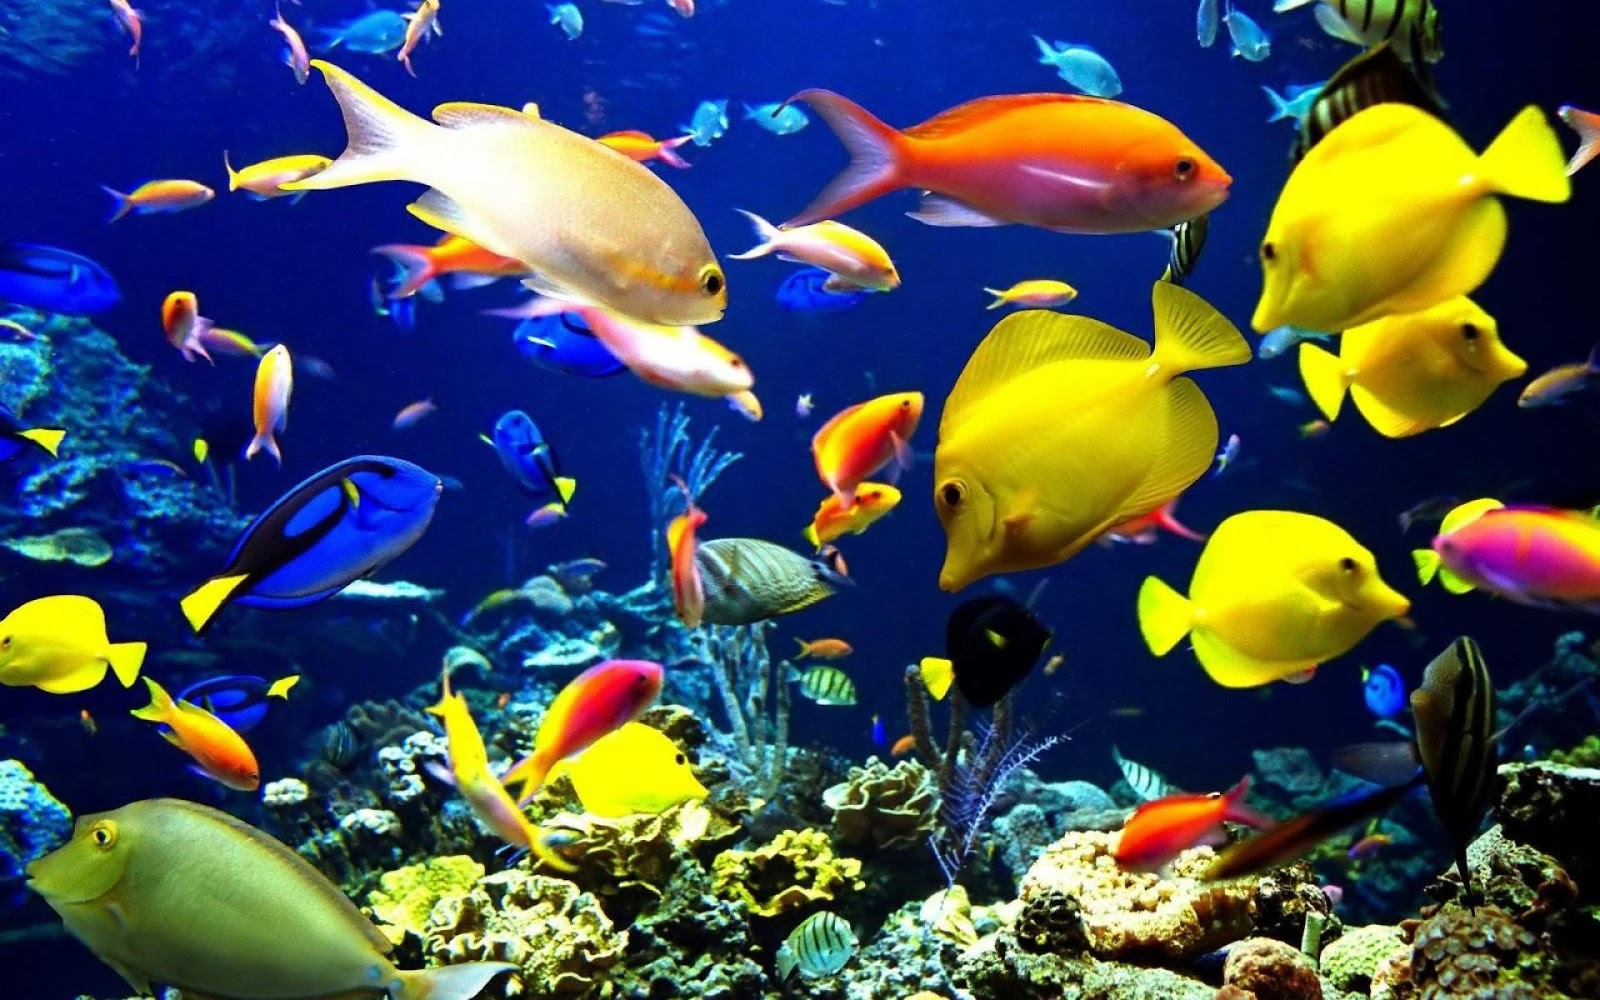 20 aquarium hd wallpapers pictures and freshwater aquarium